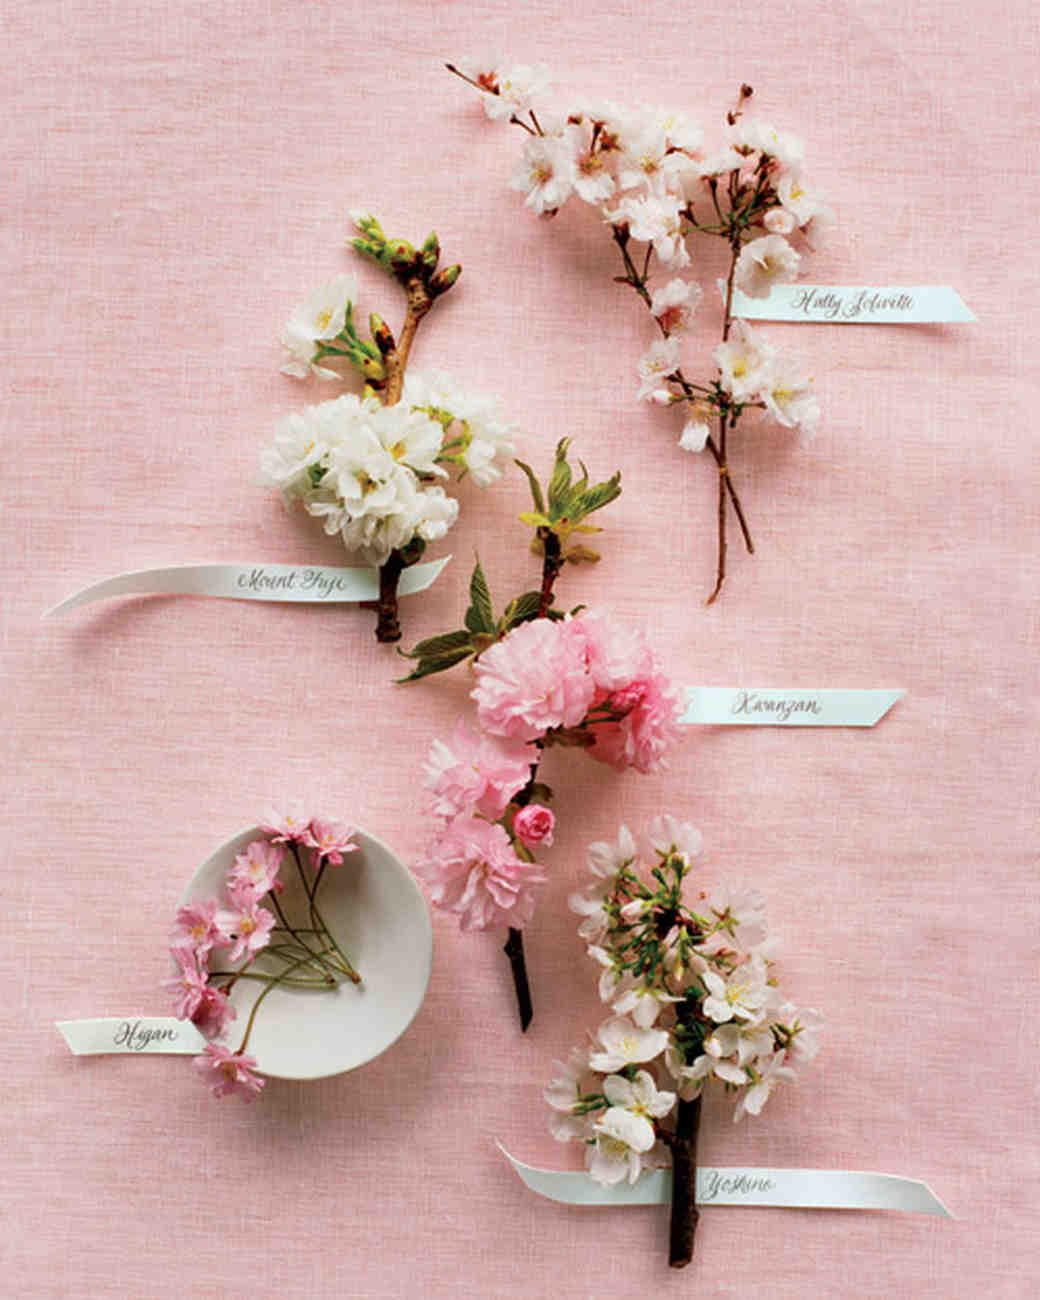 Cherry Blossom-Inspired Wedding Ideas | Martha Stewart Weddings